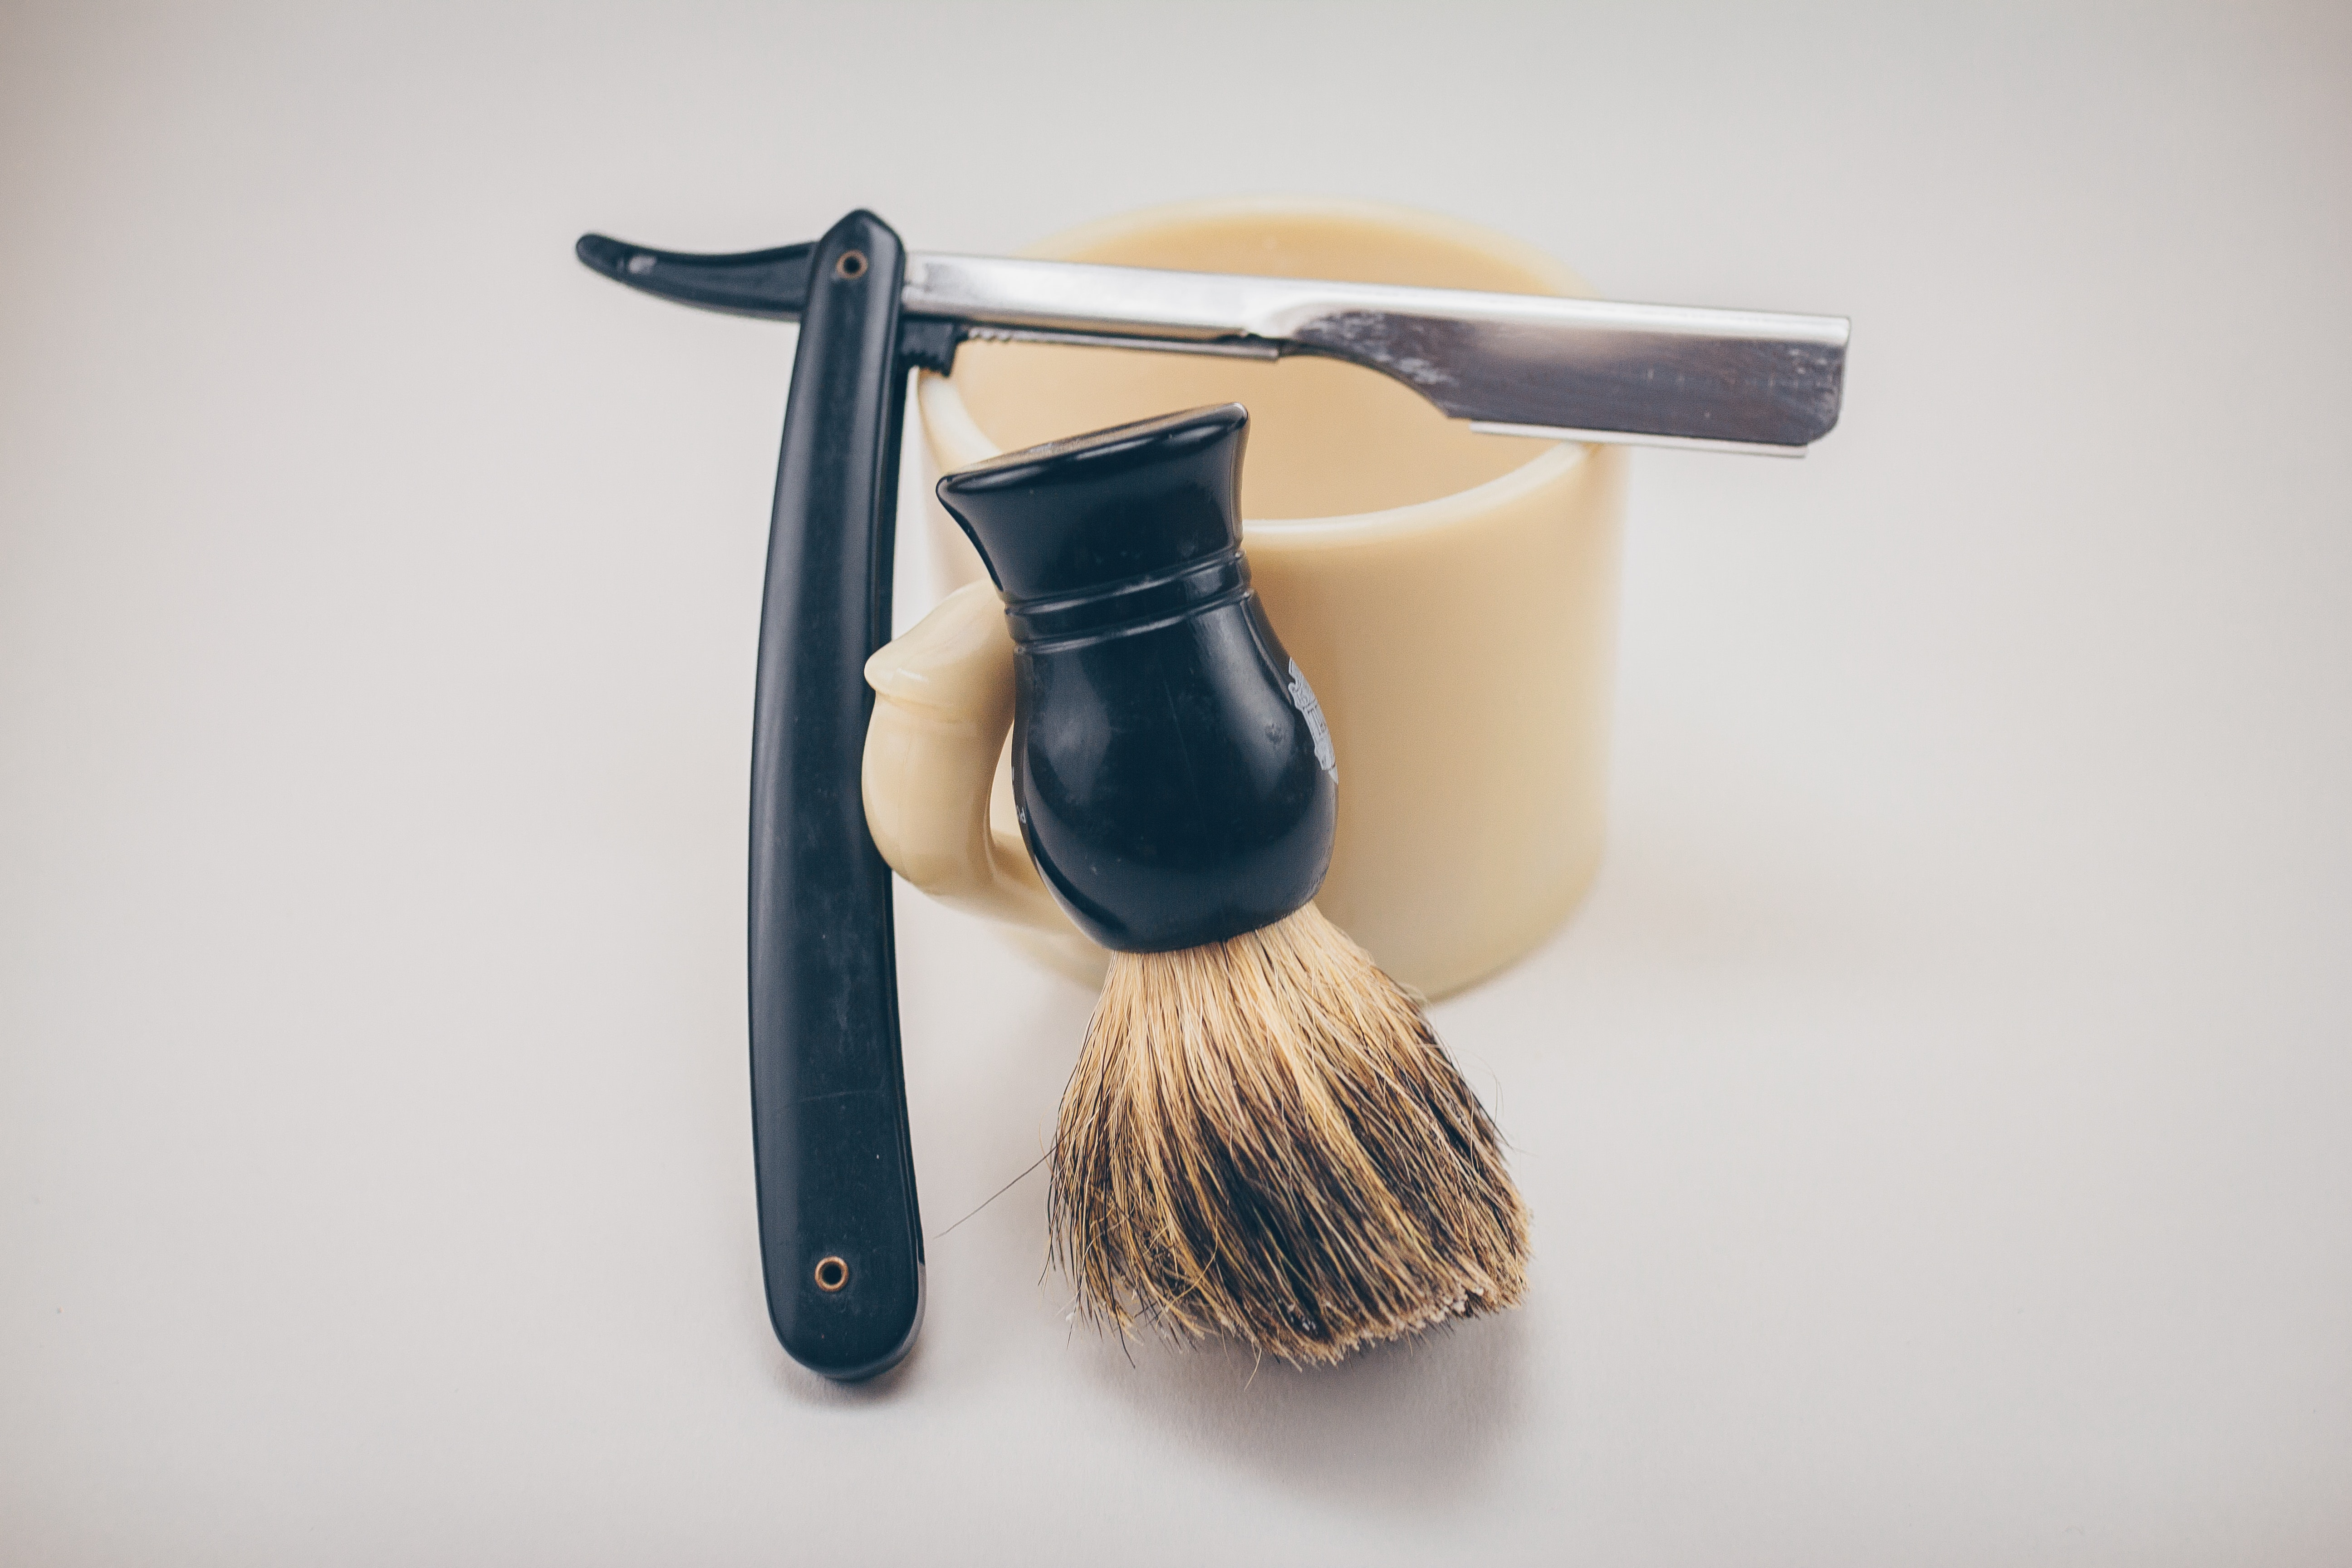 How to use a straight razor